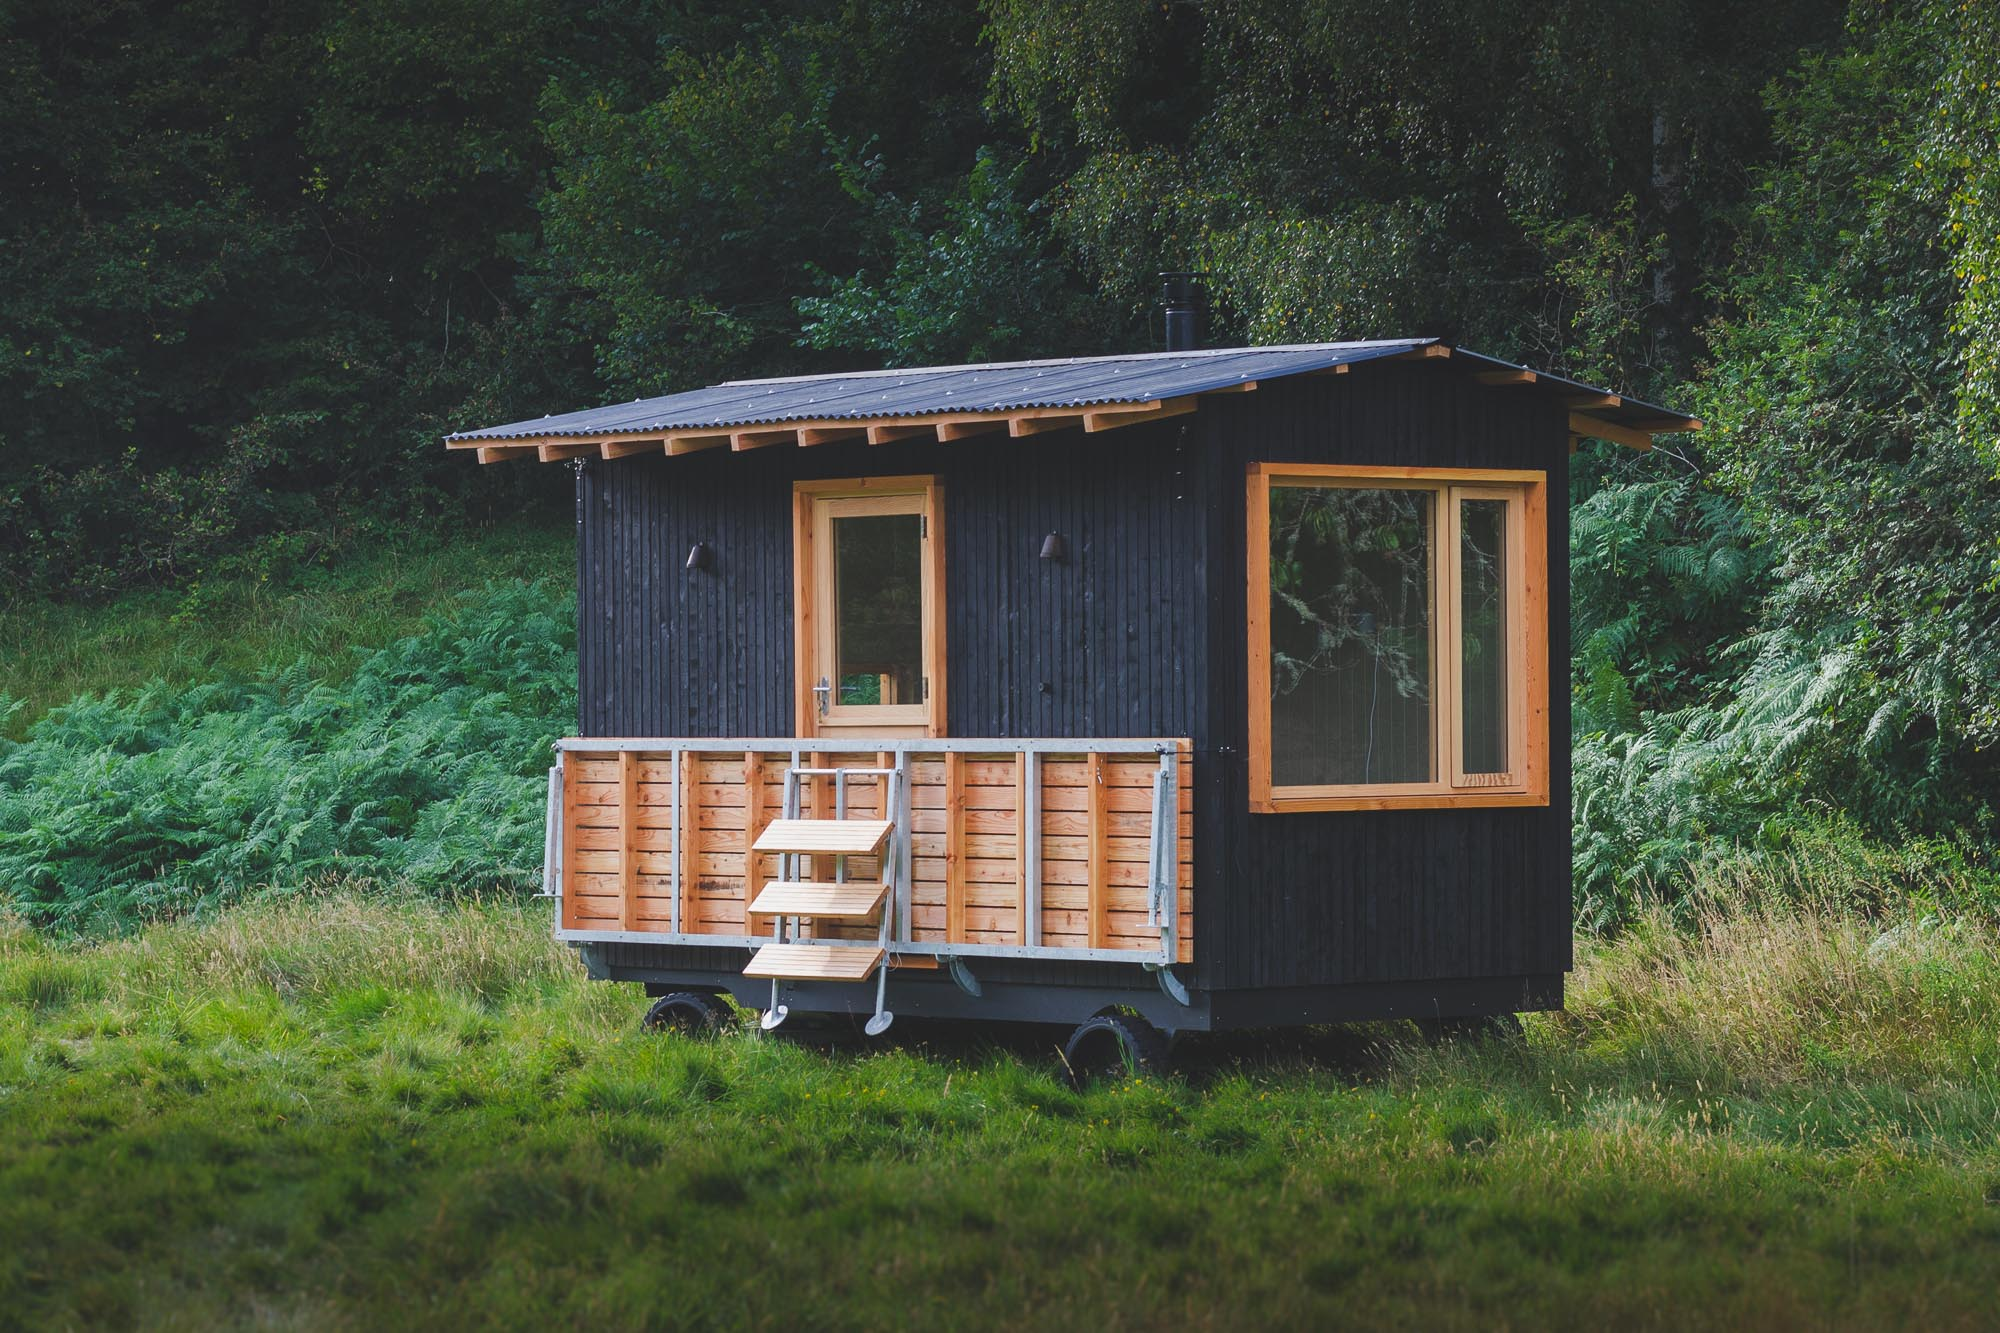 off grid tiny wooden mobile nomad cabin with black cladding and corrugated roof